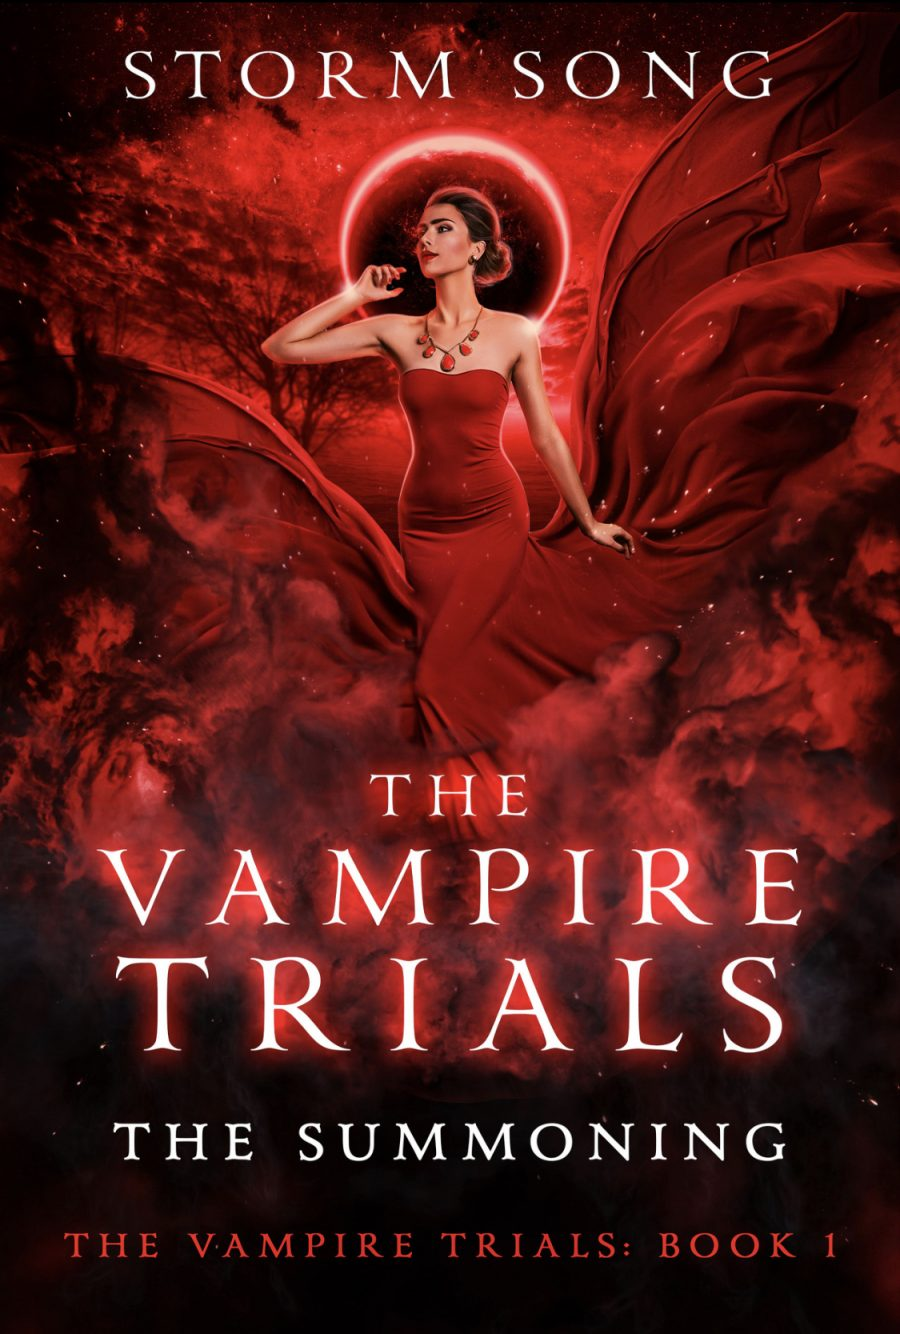 The Summoning (The Vampire Trials - Book 1) by Storm Song - A Book Review #BookReview #PNR #FastBurn #RH #ReverseHarem #Vampires #KindleUnlimited #KU